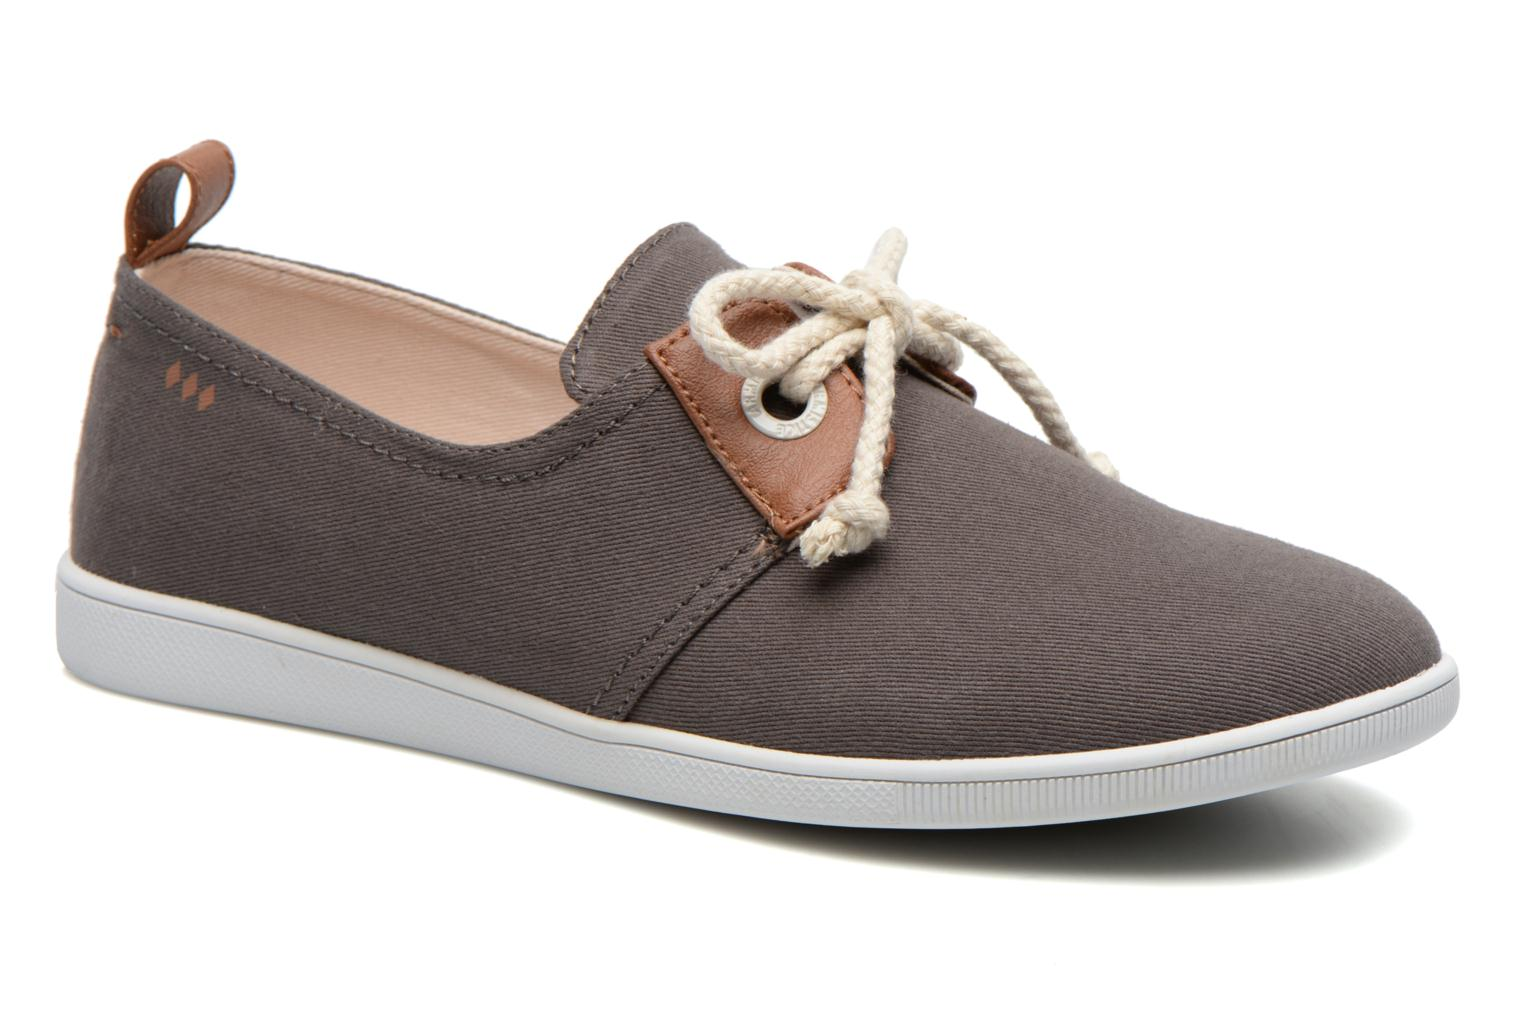 sneakers-stone-one-twill-m-by-armistice